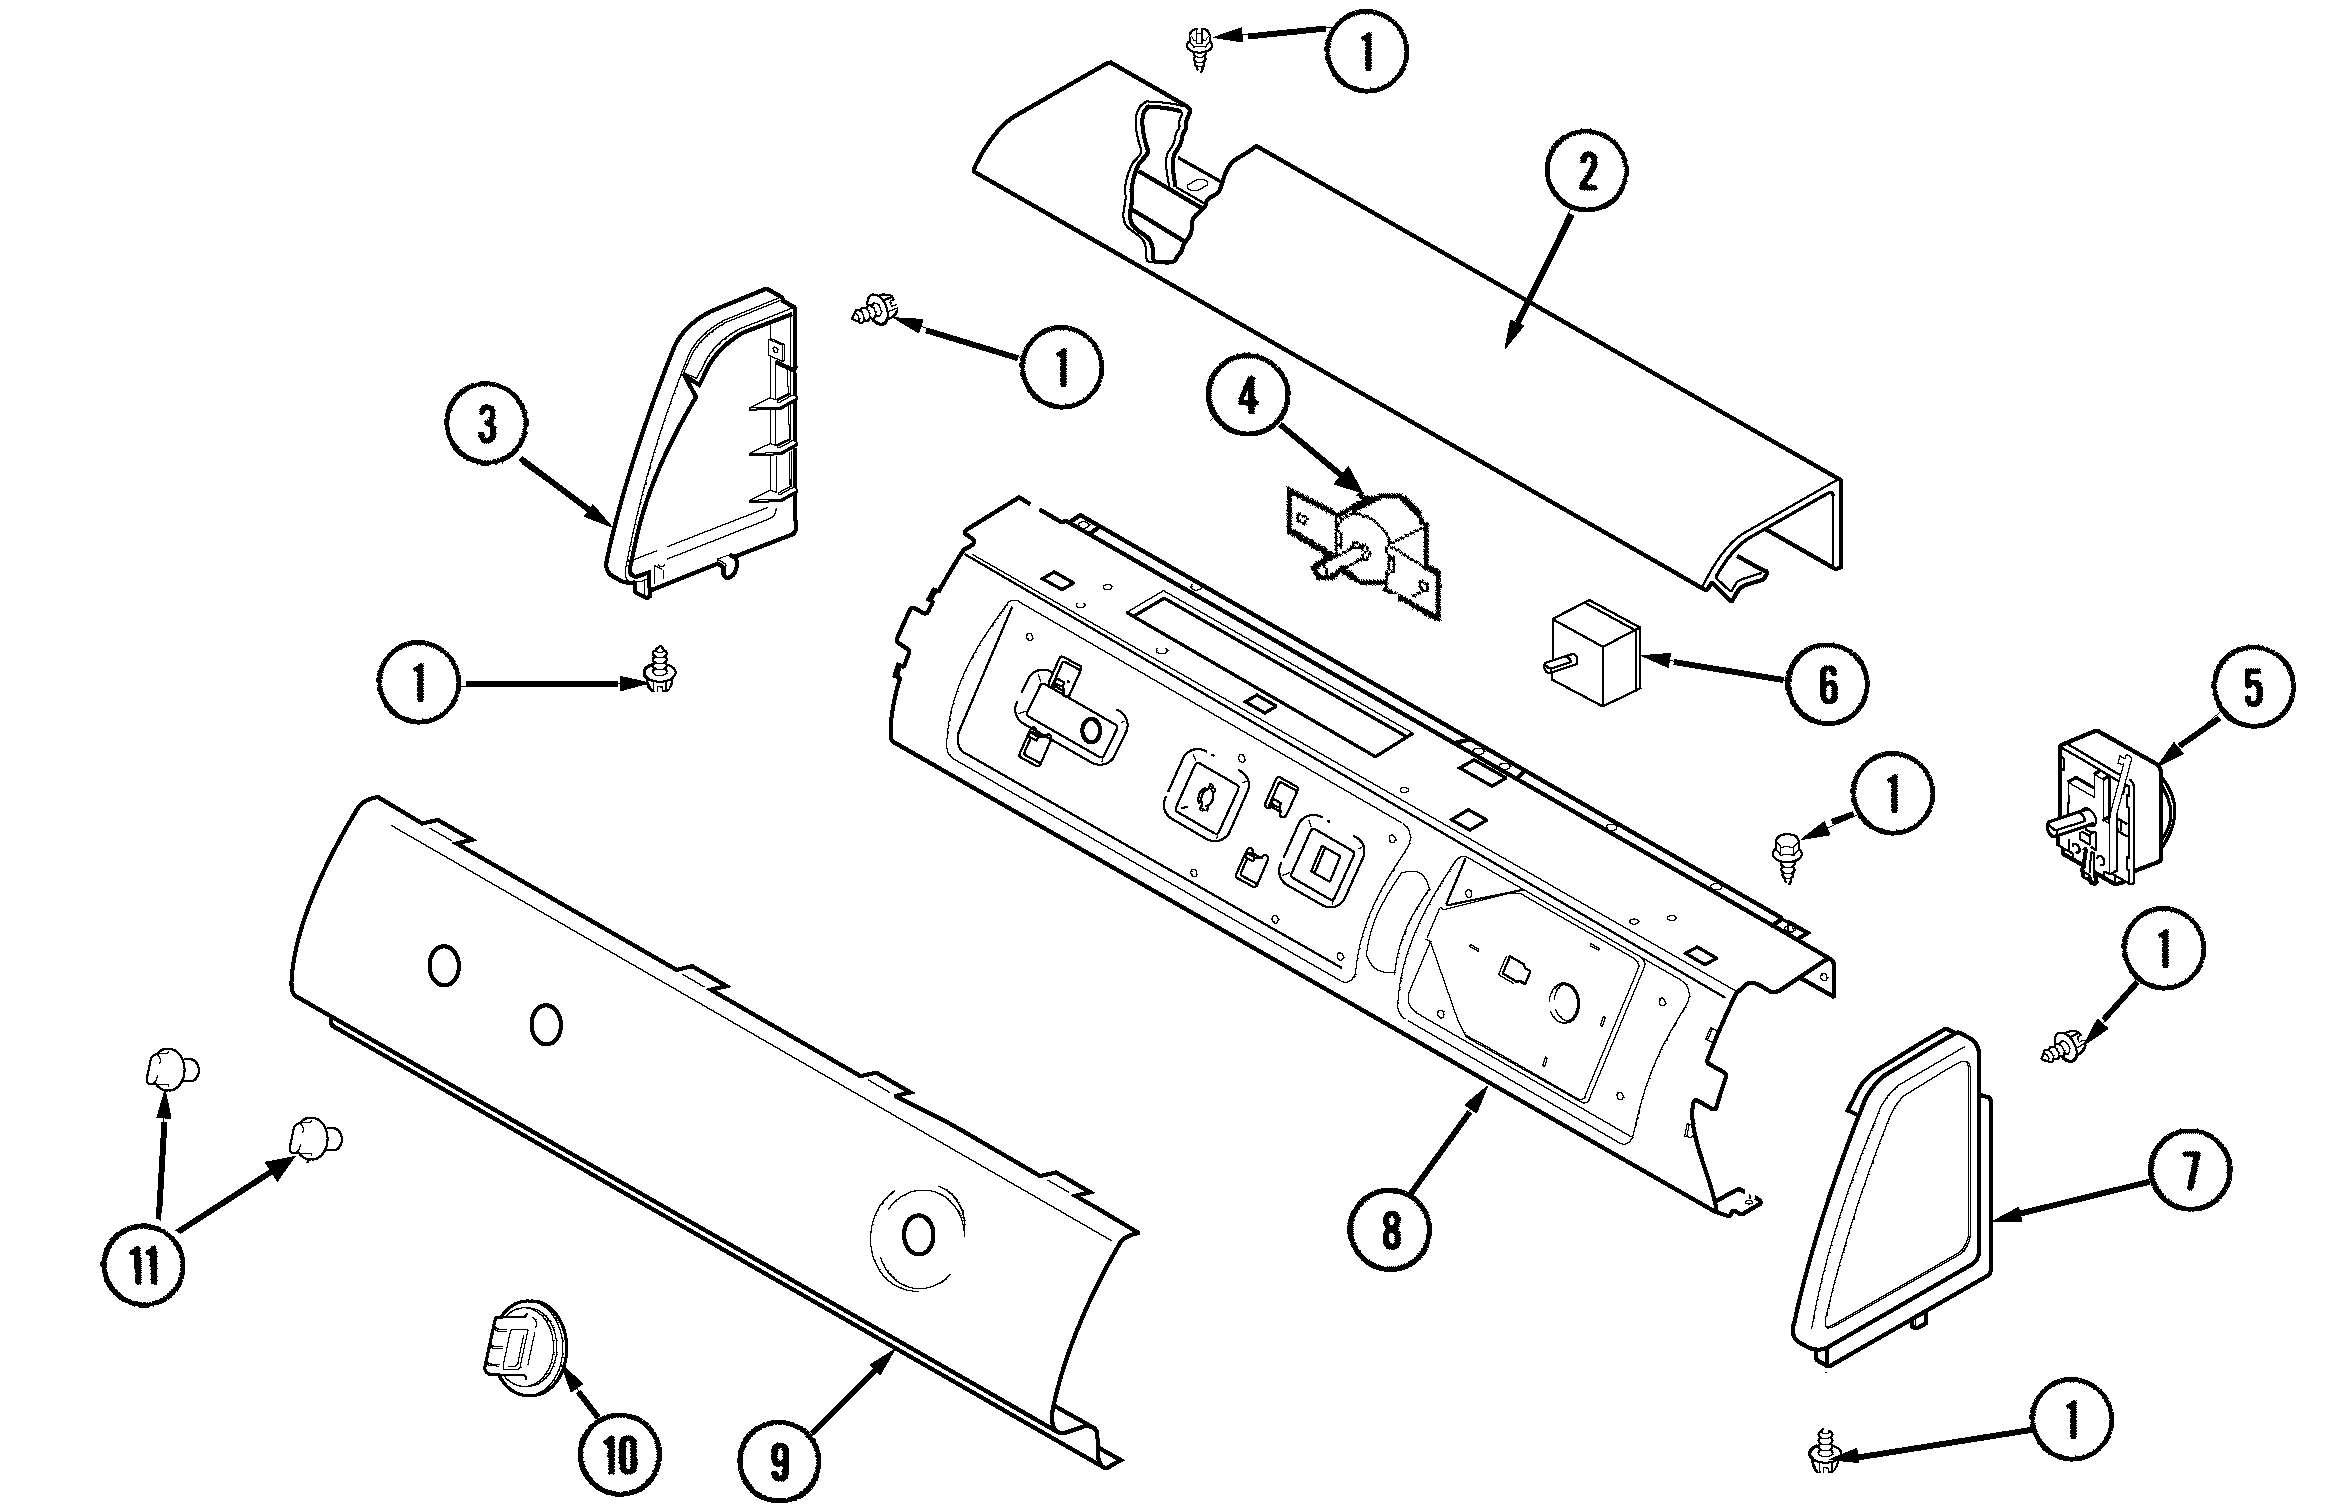 Amana ALE331RCW control panel diagram